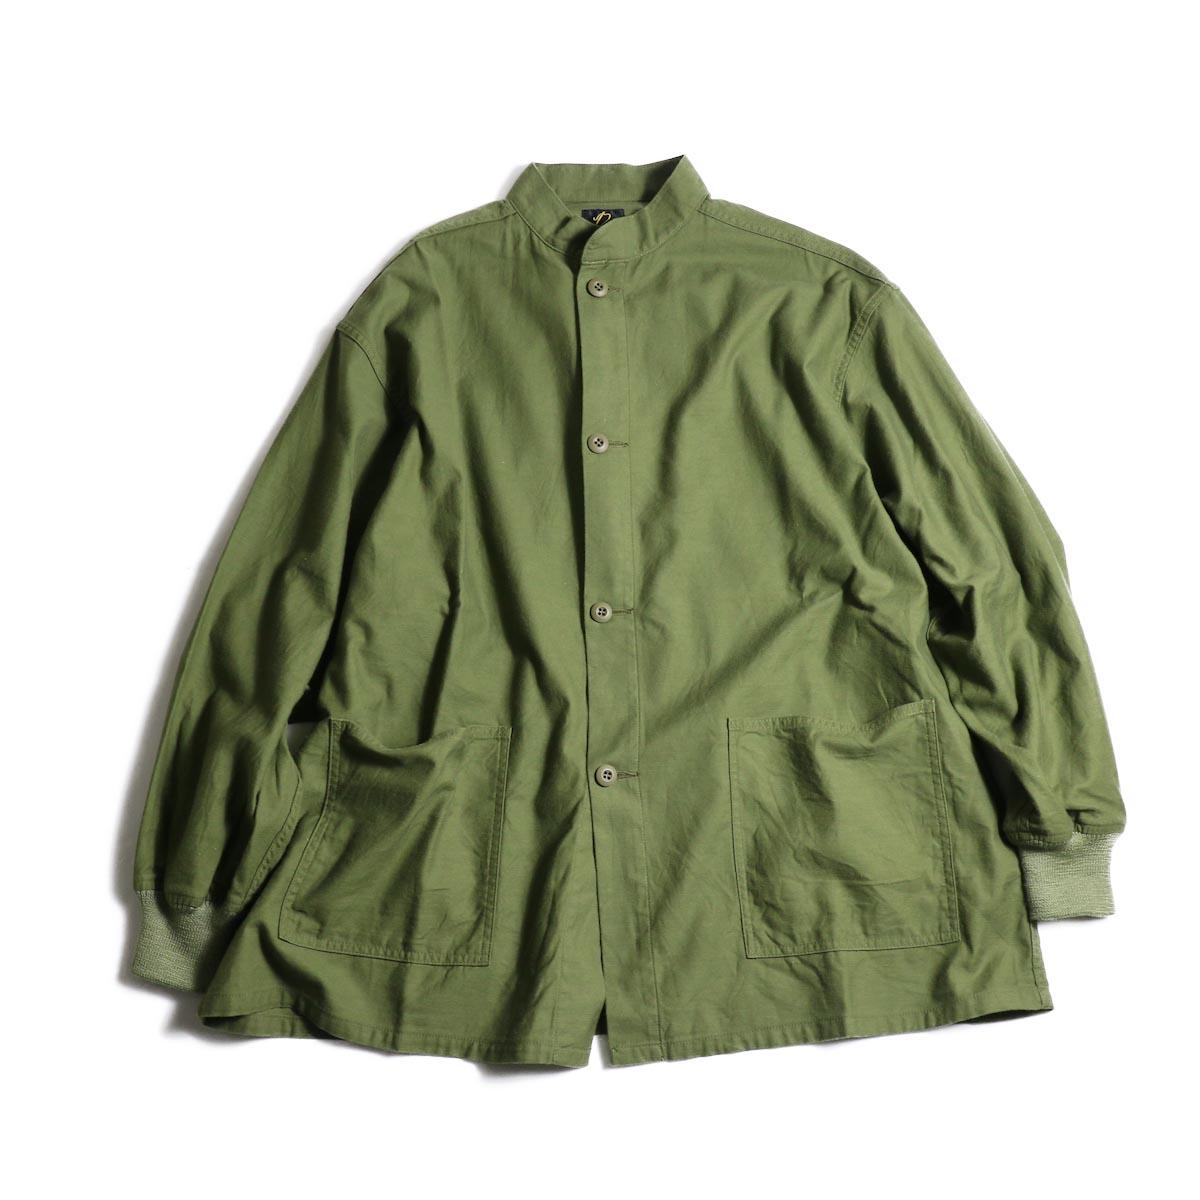 Needles / S.C. ARMY SHIRT - BACK SATEEN (Olive)正面